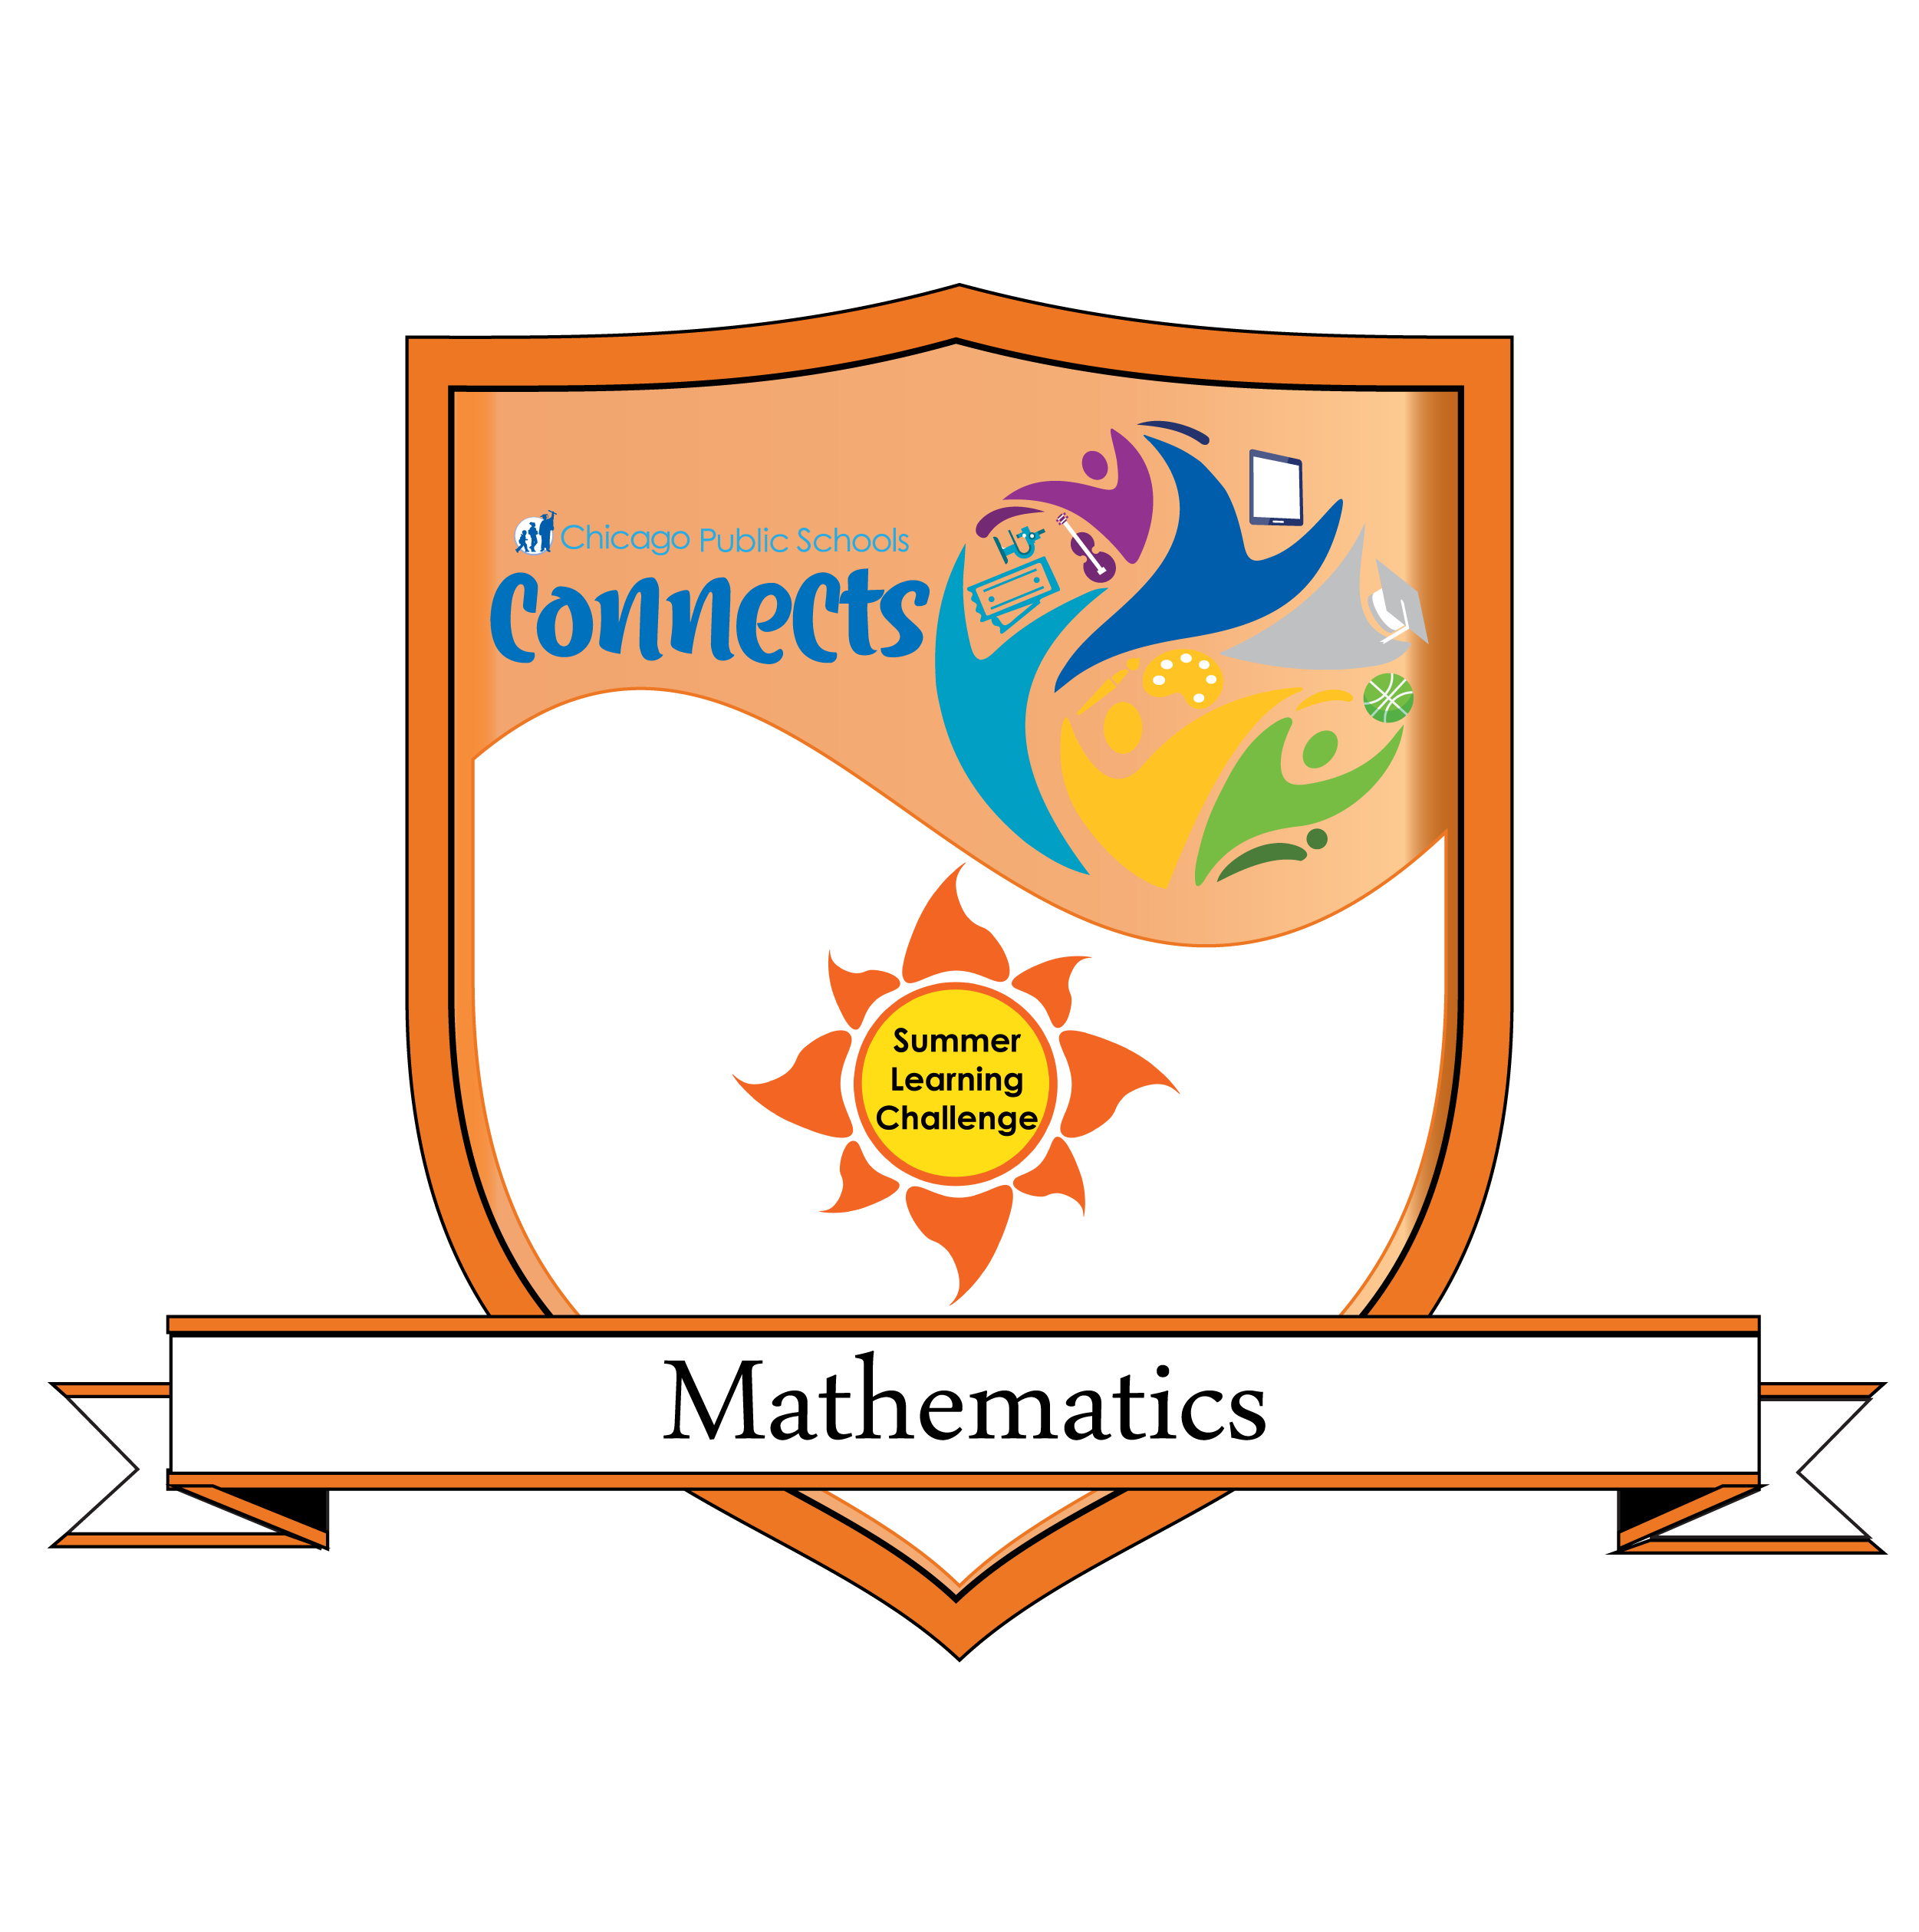 CPS Connects Summer 2016: Mathematics